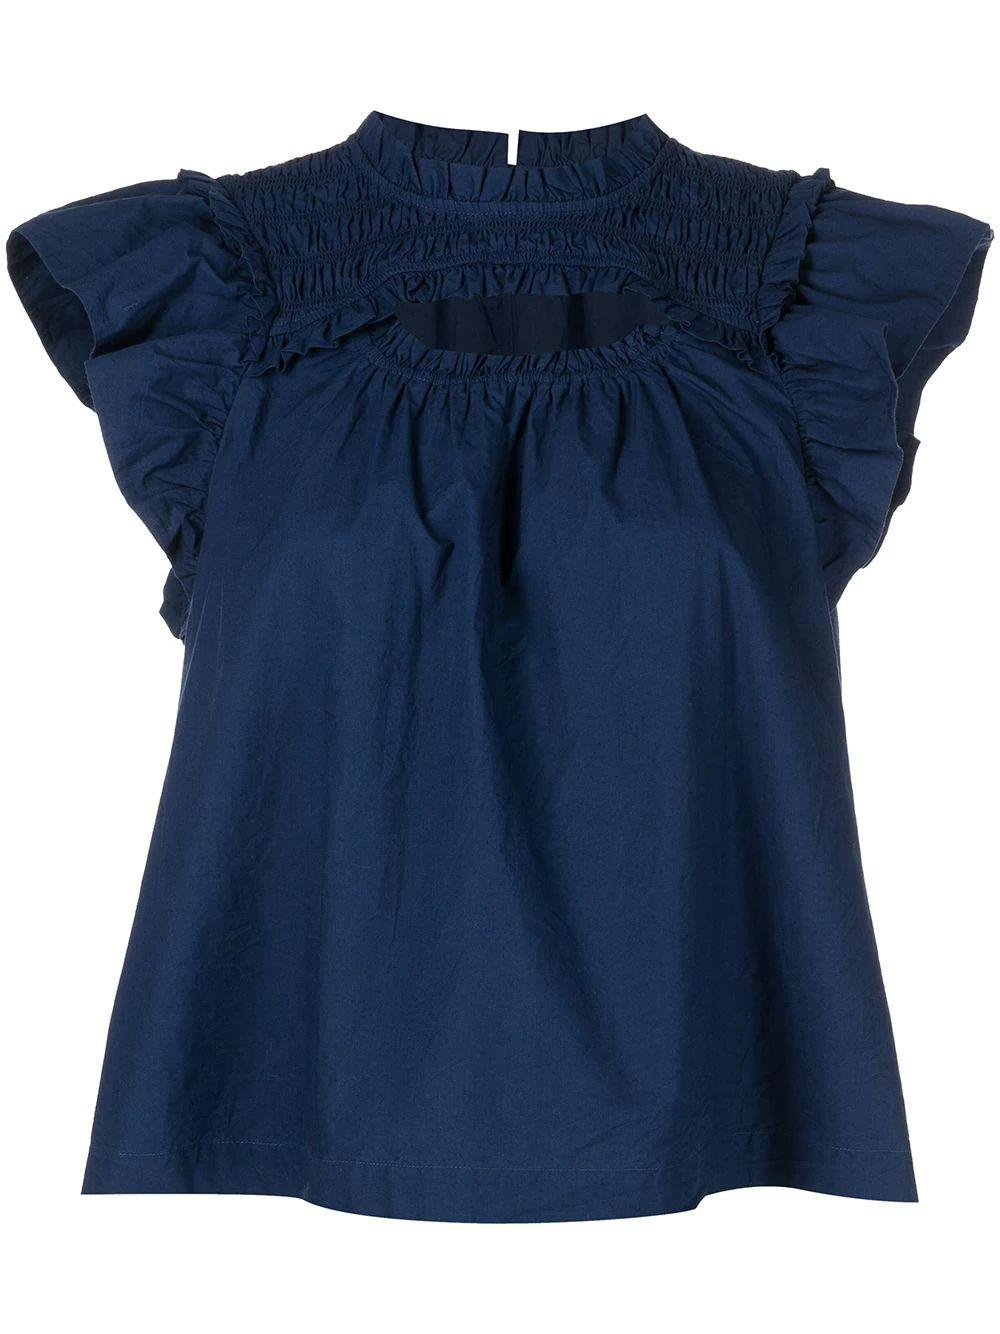 Claudine Flutter Sleeve Top Item # AW21-014